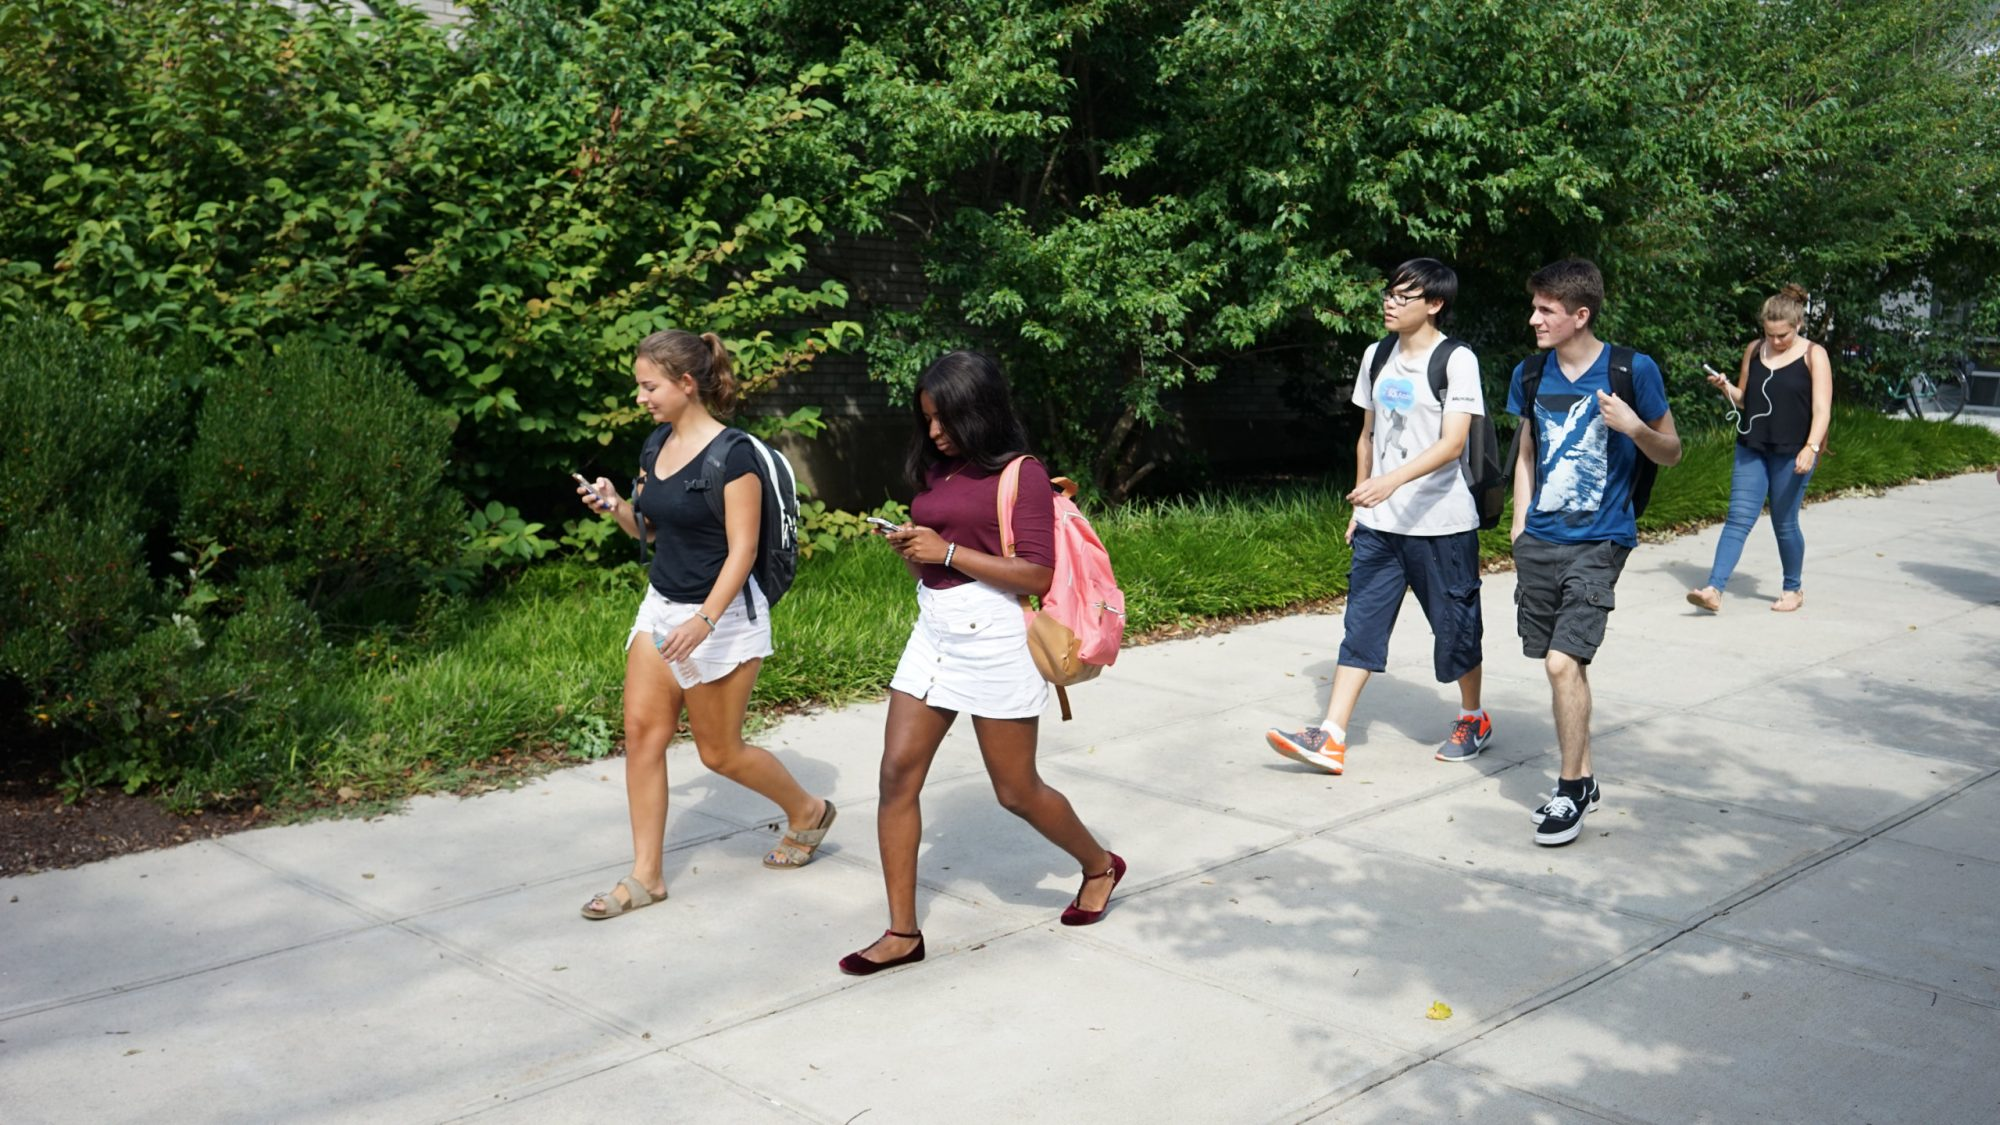 Students walk on campus while looking at their phones